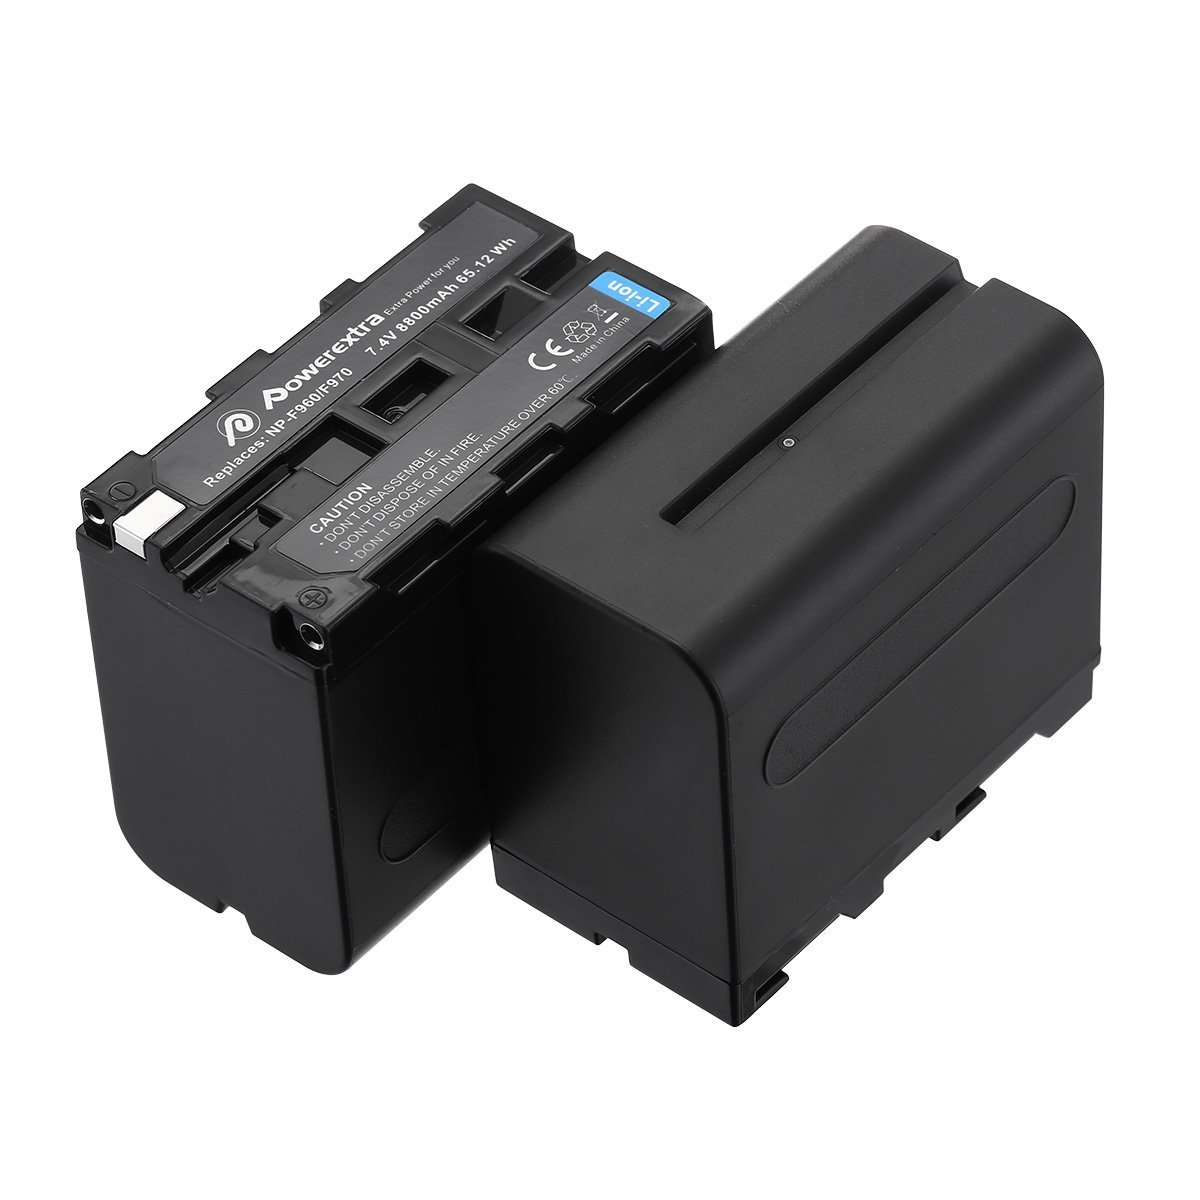 Powerextra 2 Pack Replacement Sony NP-F970 Battery 8800mAh for Sony DCR-VX2100, DSR-PD150, DSR-PD170, FDR-AX1, HDR-AX2000, HDR-FX1, HDR-FX7, HDR-FX1000, HVL-LBPB, HVR-HD1000U, HVR-V1U, HVR-Z1P